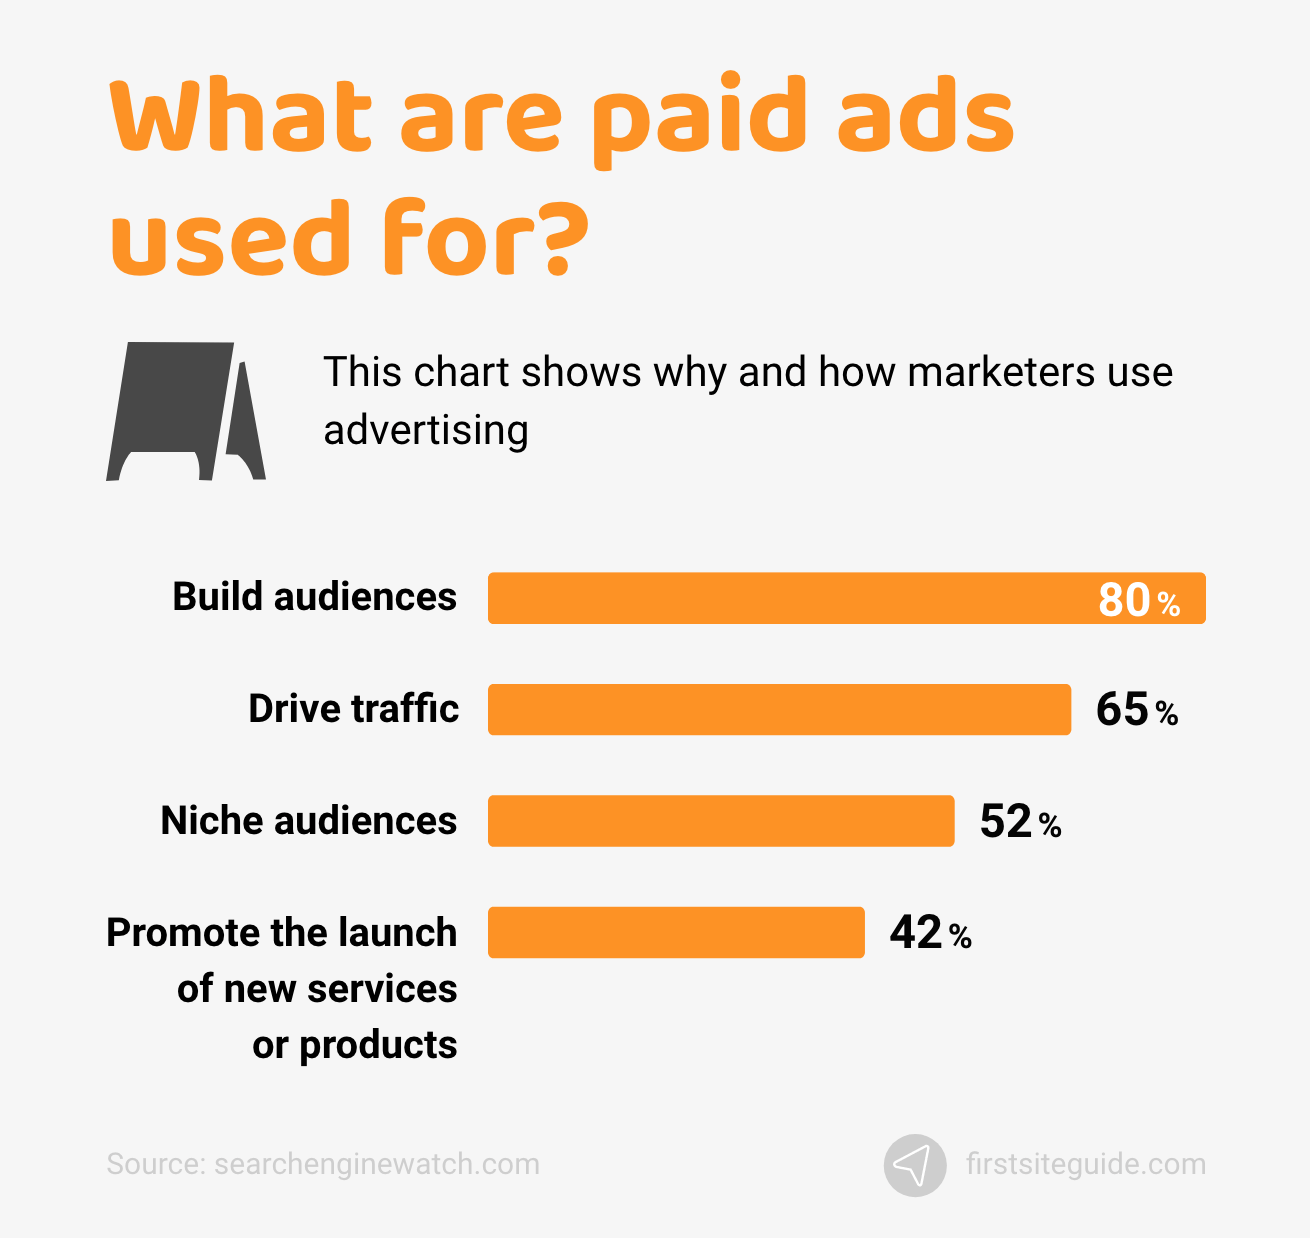 What are paid ads used for